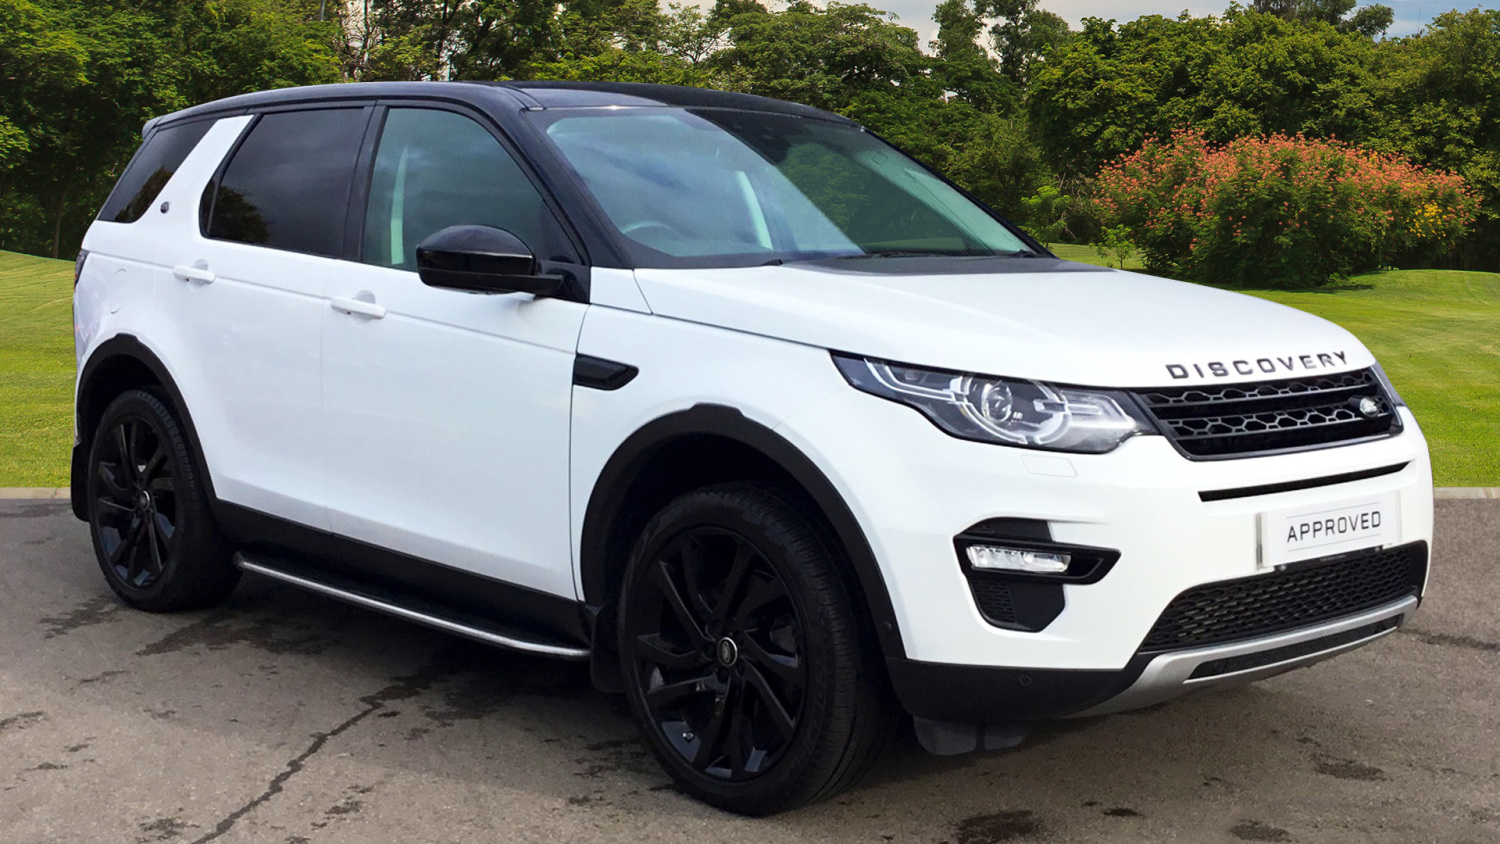 used land rover discovery sport 2 2 sd4 hse luxury 5dr auto diesel station wagon for sale. Black Bedroom Furniture Sets. Home Design Ideas